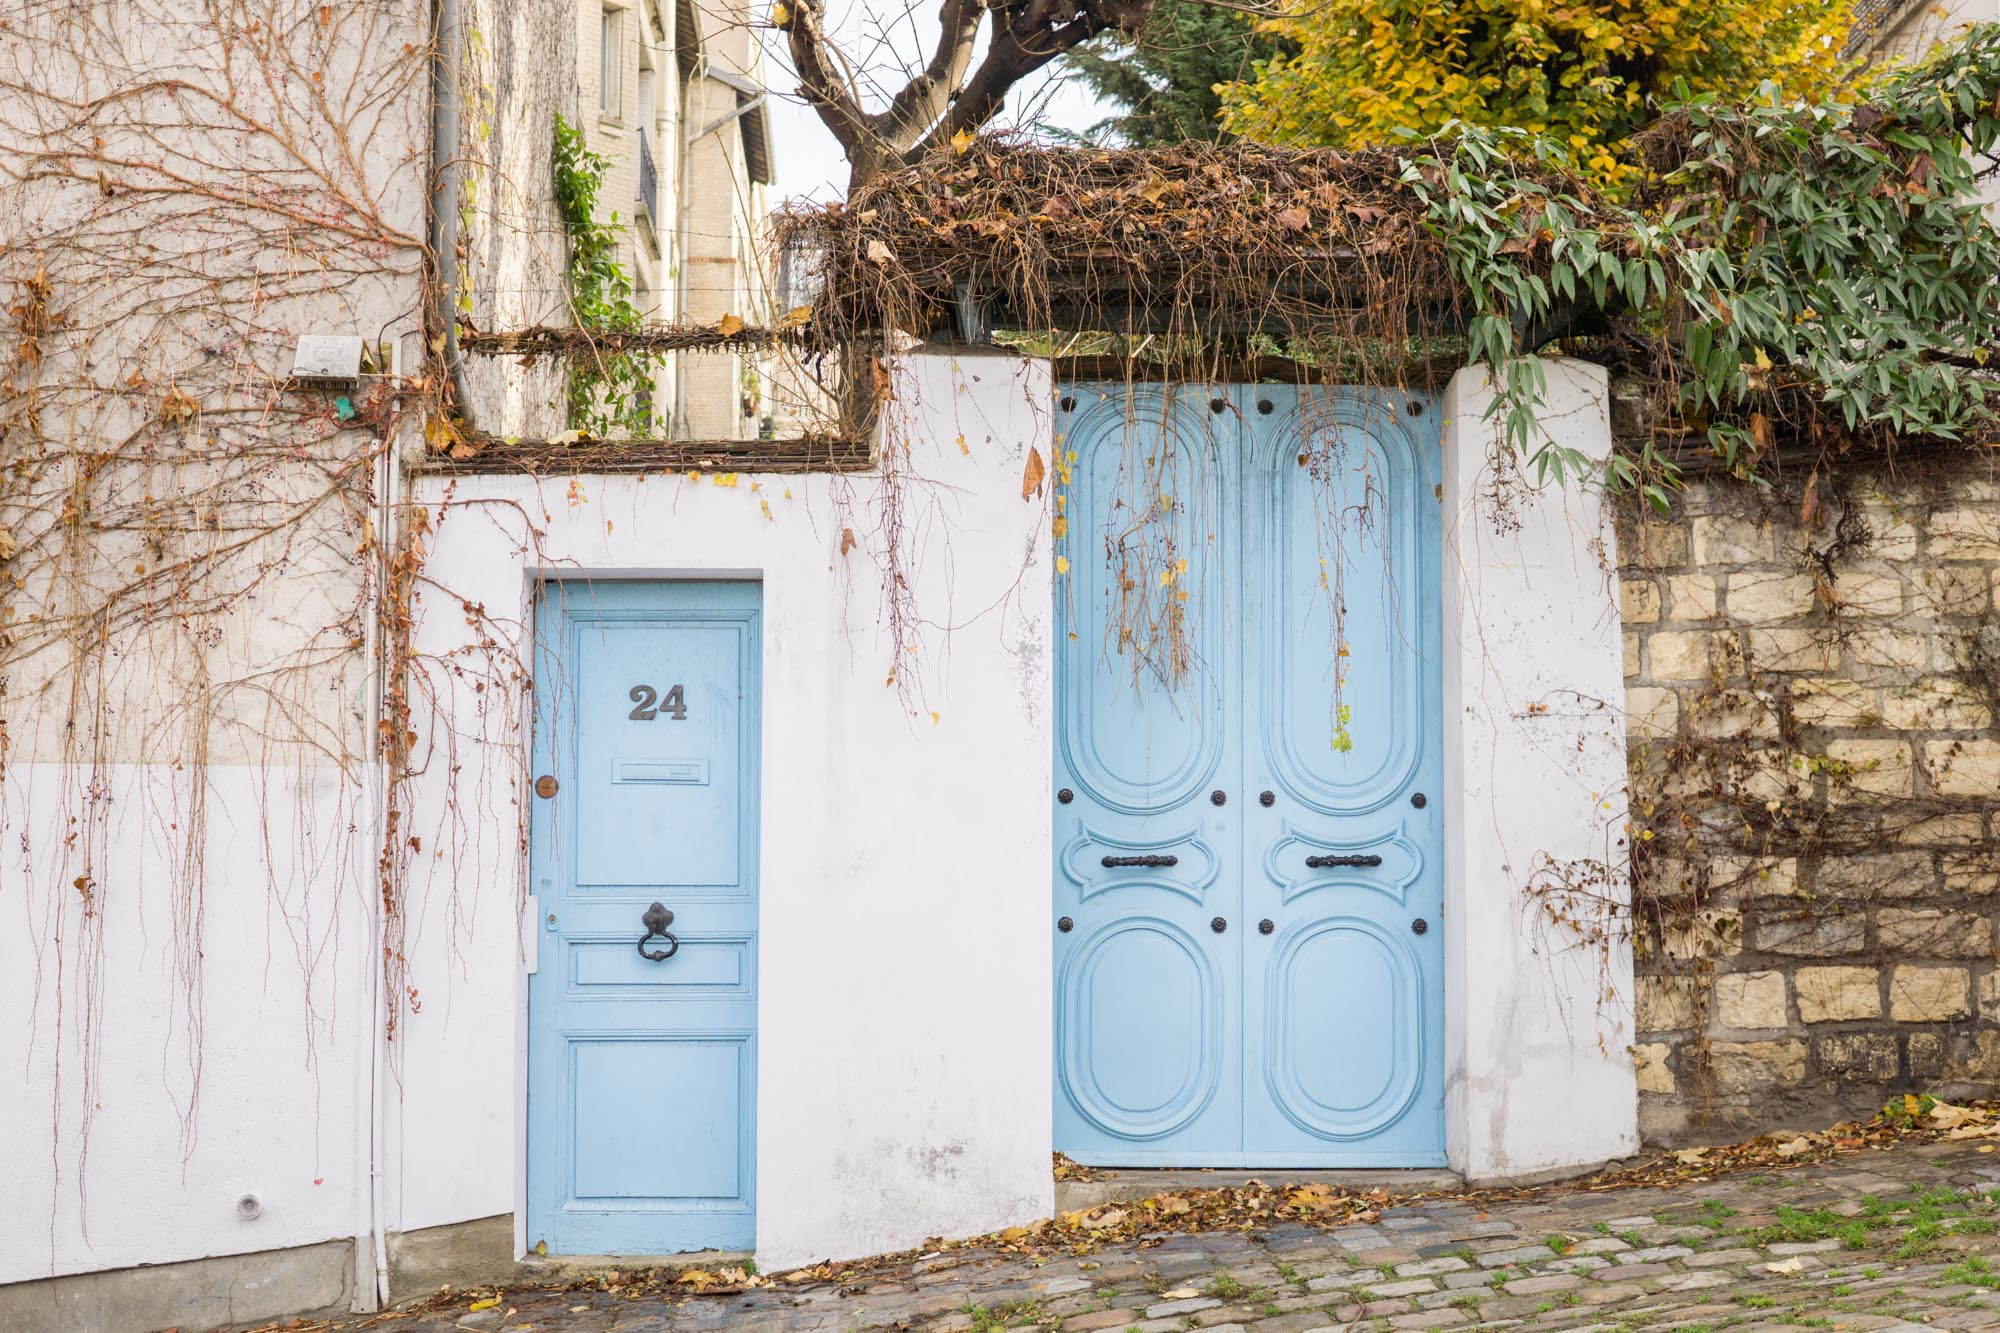 Sharing a few wonderful places to explore in Montmartre, a whimsical village in the 18th arrondissement of Paris | Montmartre Travel Guide | Paris Travel Tips